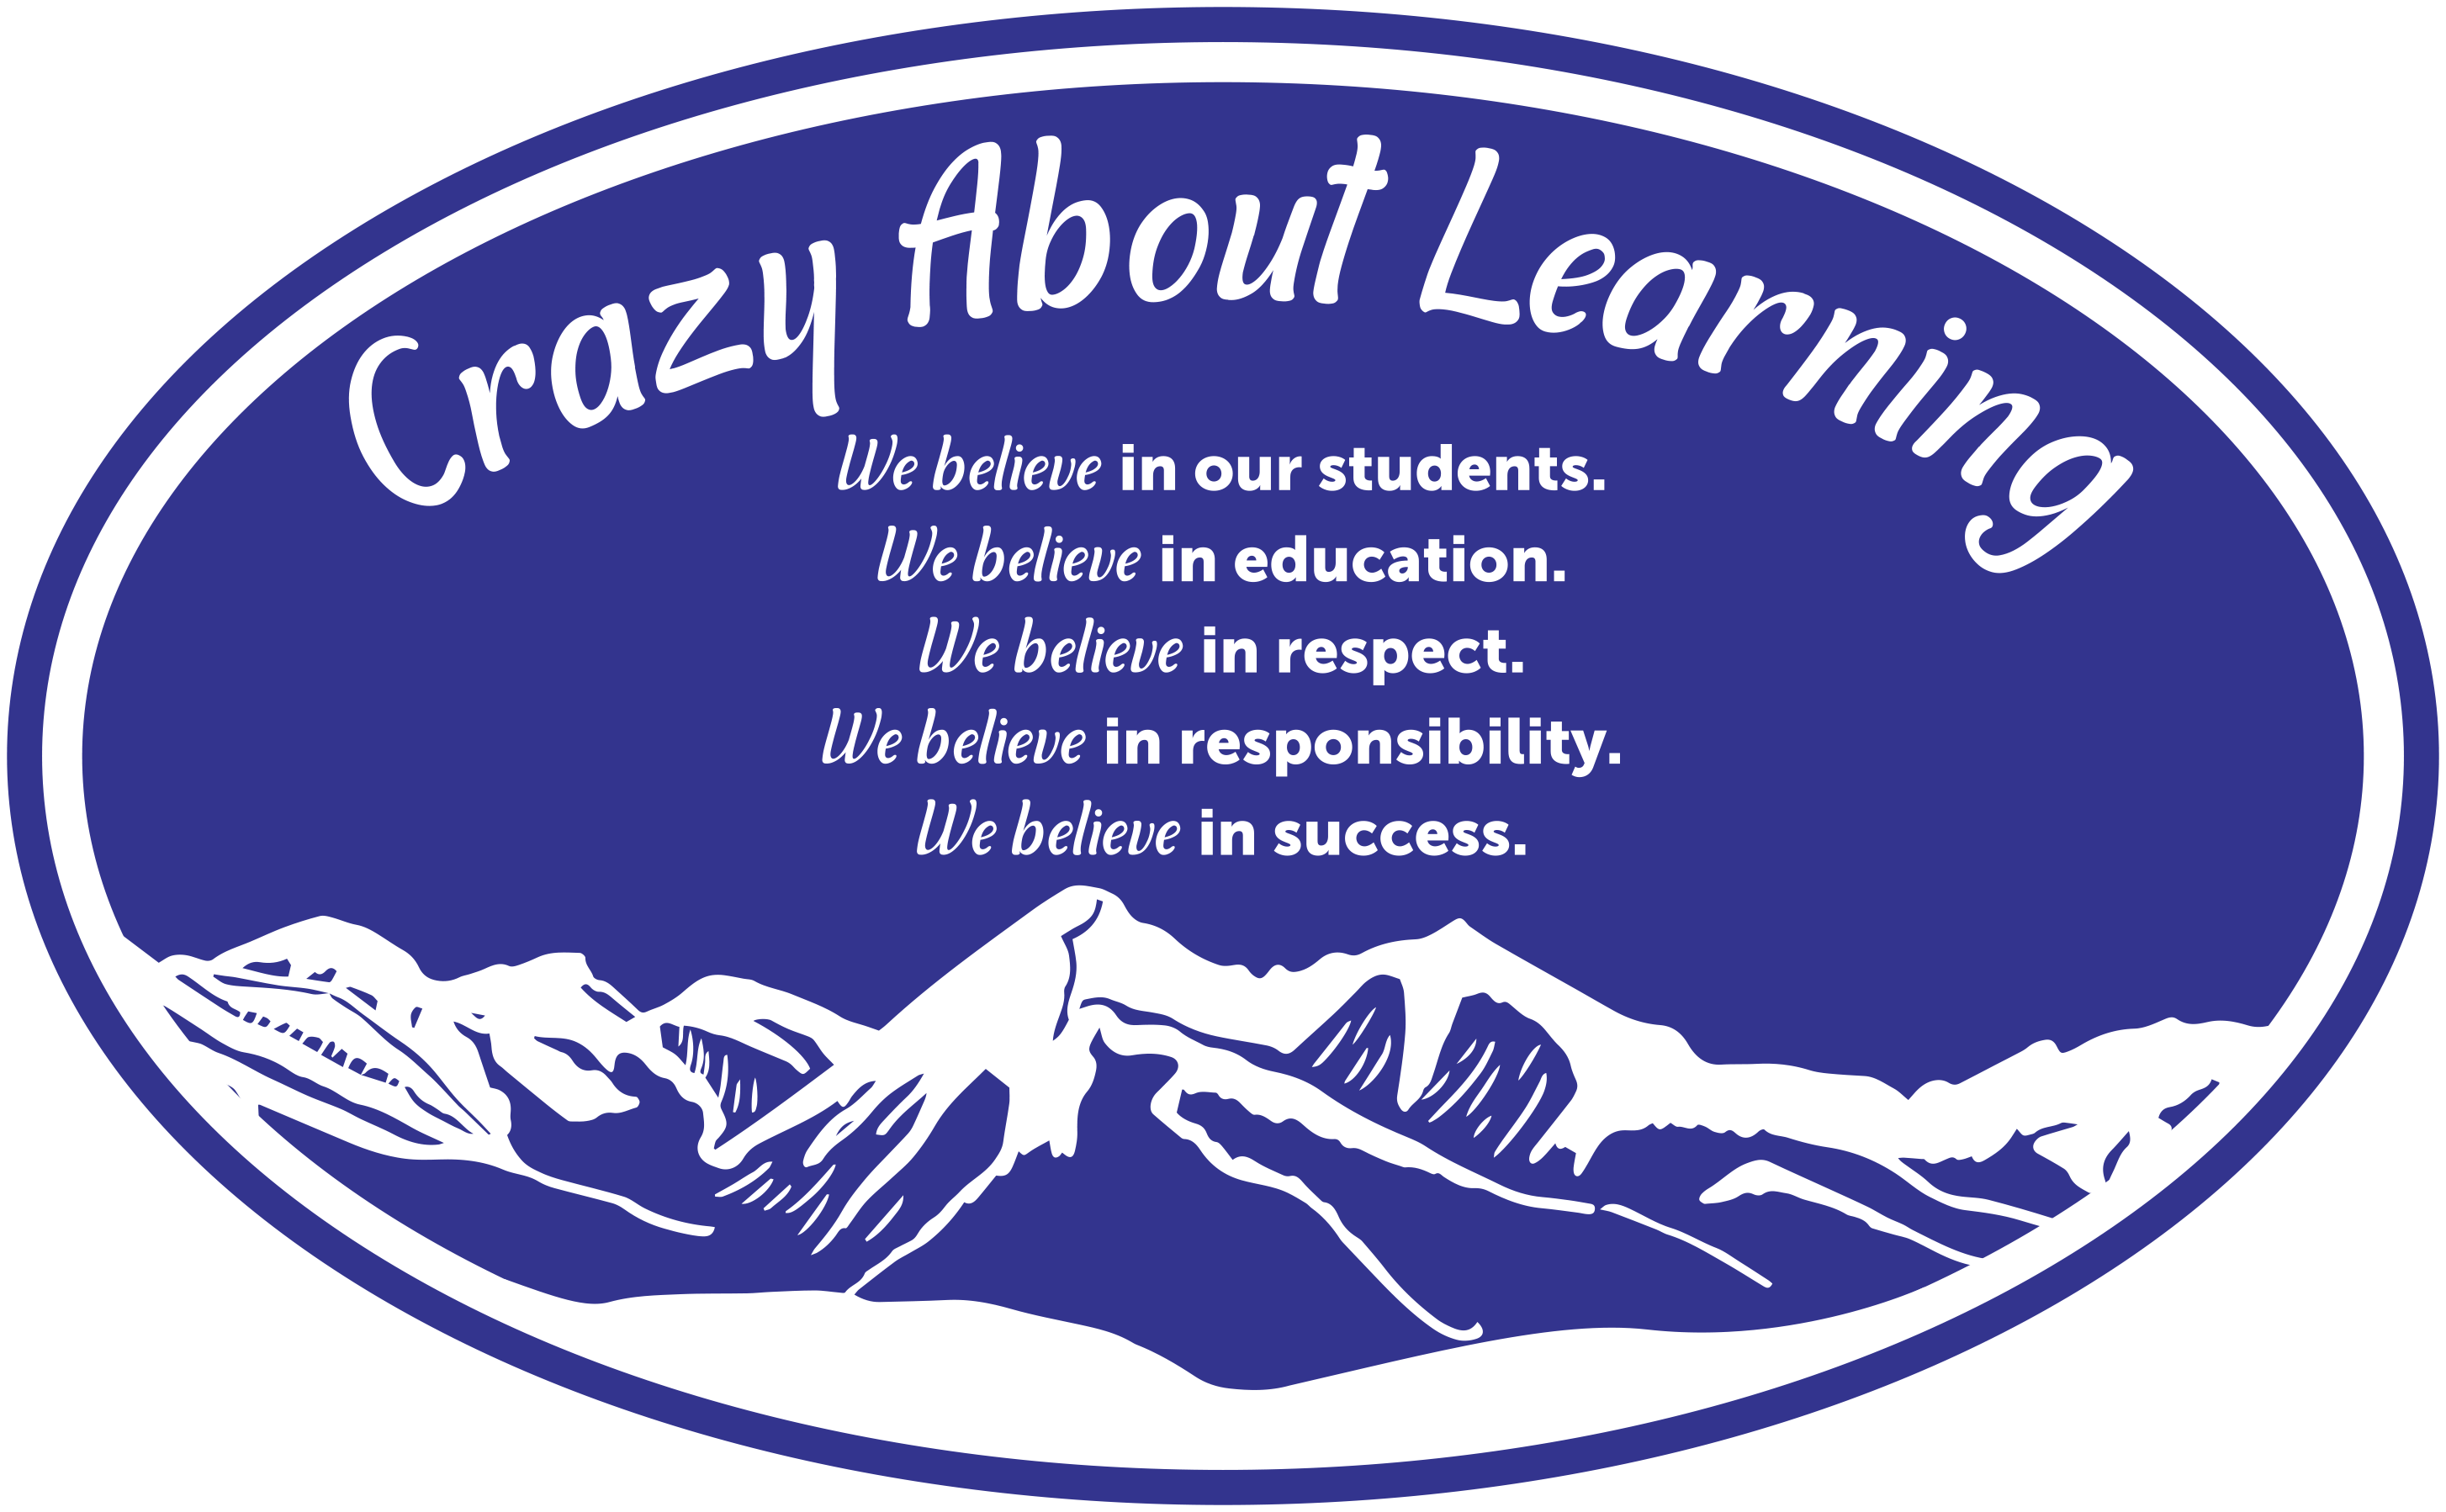 CRAZY ABOUT LEARNING LOGO